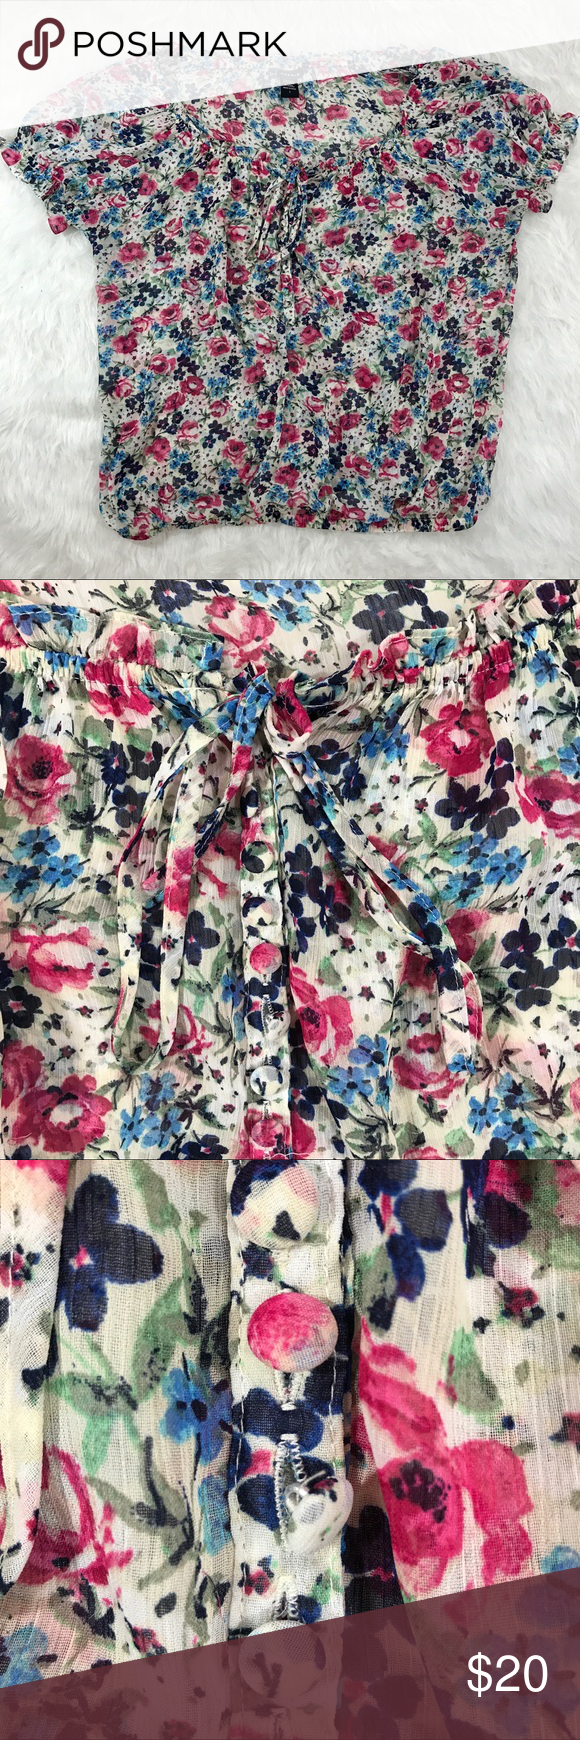 """Torrid Floral Sheer Blouse Cap Sleeve Torrid Floral Sheer Blouse Cap Sleeve. Blouse has a front tie and buttons a quarter of the way down. Torrid size 1. Elastic on hem of shirt and sleeves.   {Measurements laying flat} Armpit to armpit: 26"""" Length: 26""""  ❌No Trades❌ 📦Fast Shipping📦 💬Offers Considered💬 🛍10% Off 2+ Items🛍 🎊Suggested User 🎊 torrid Tops Blouses"""